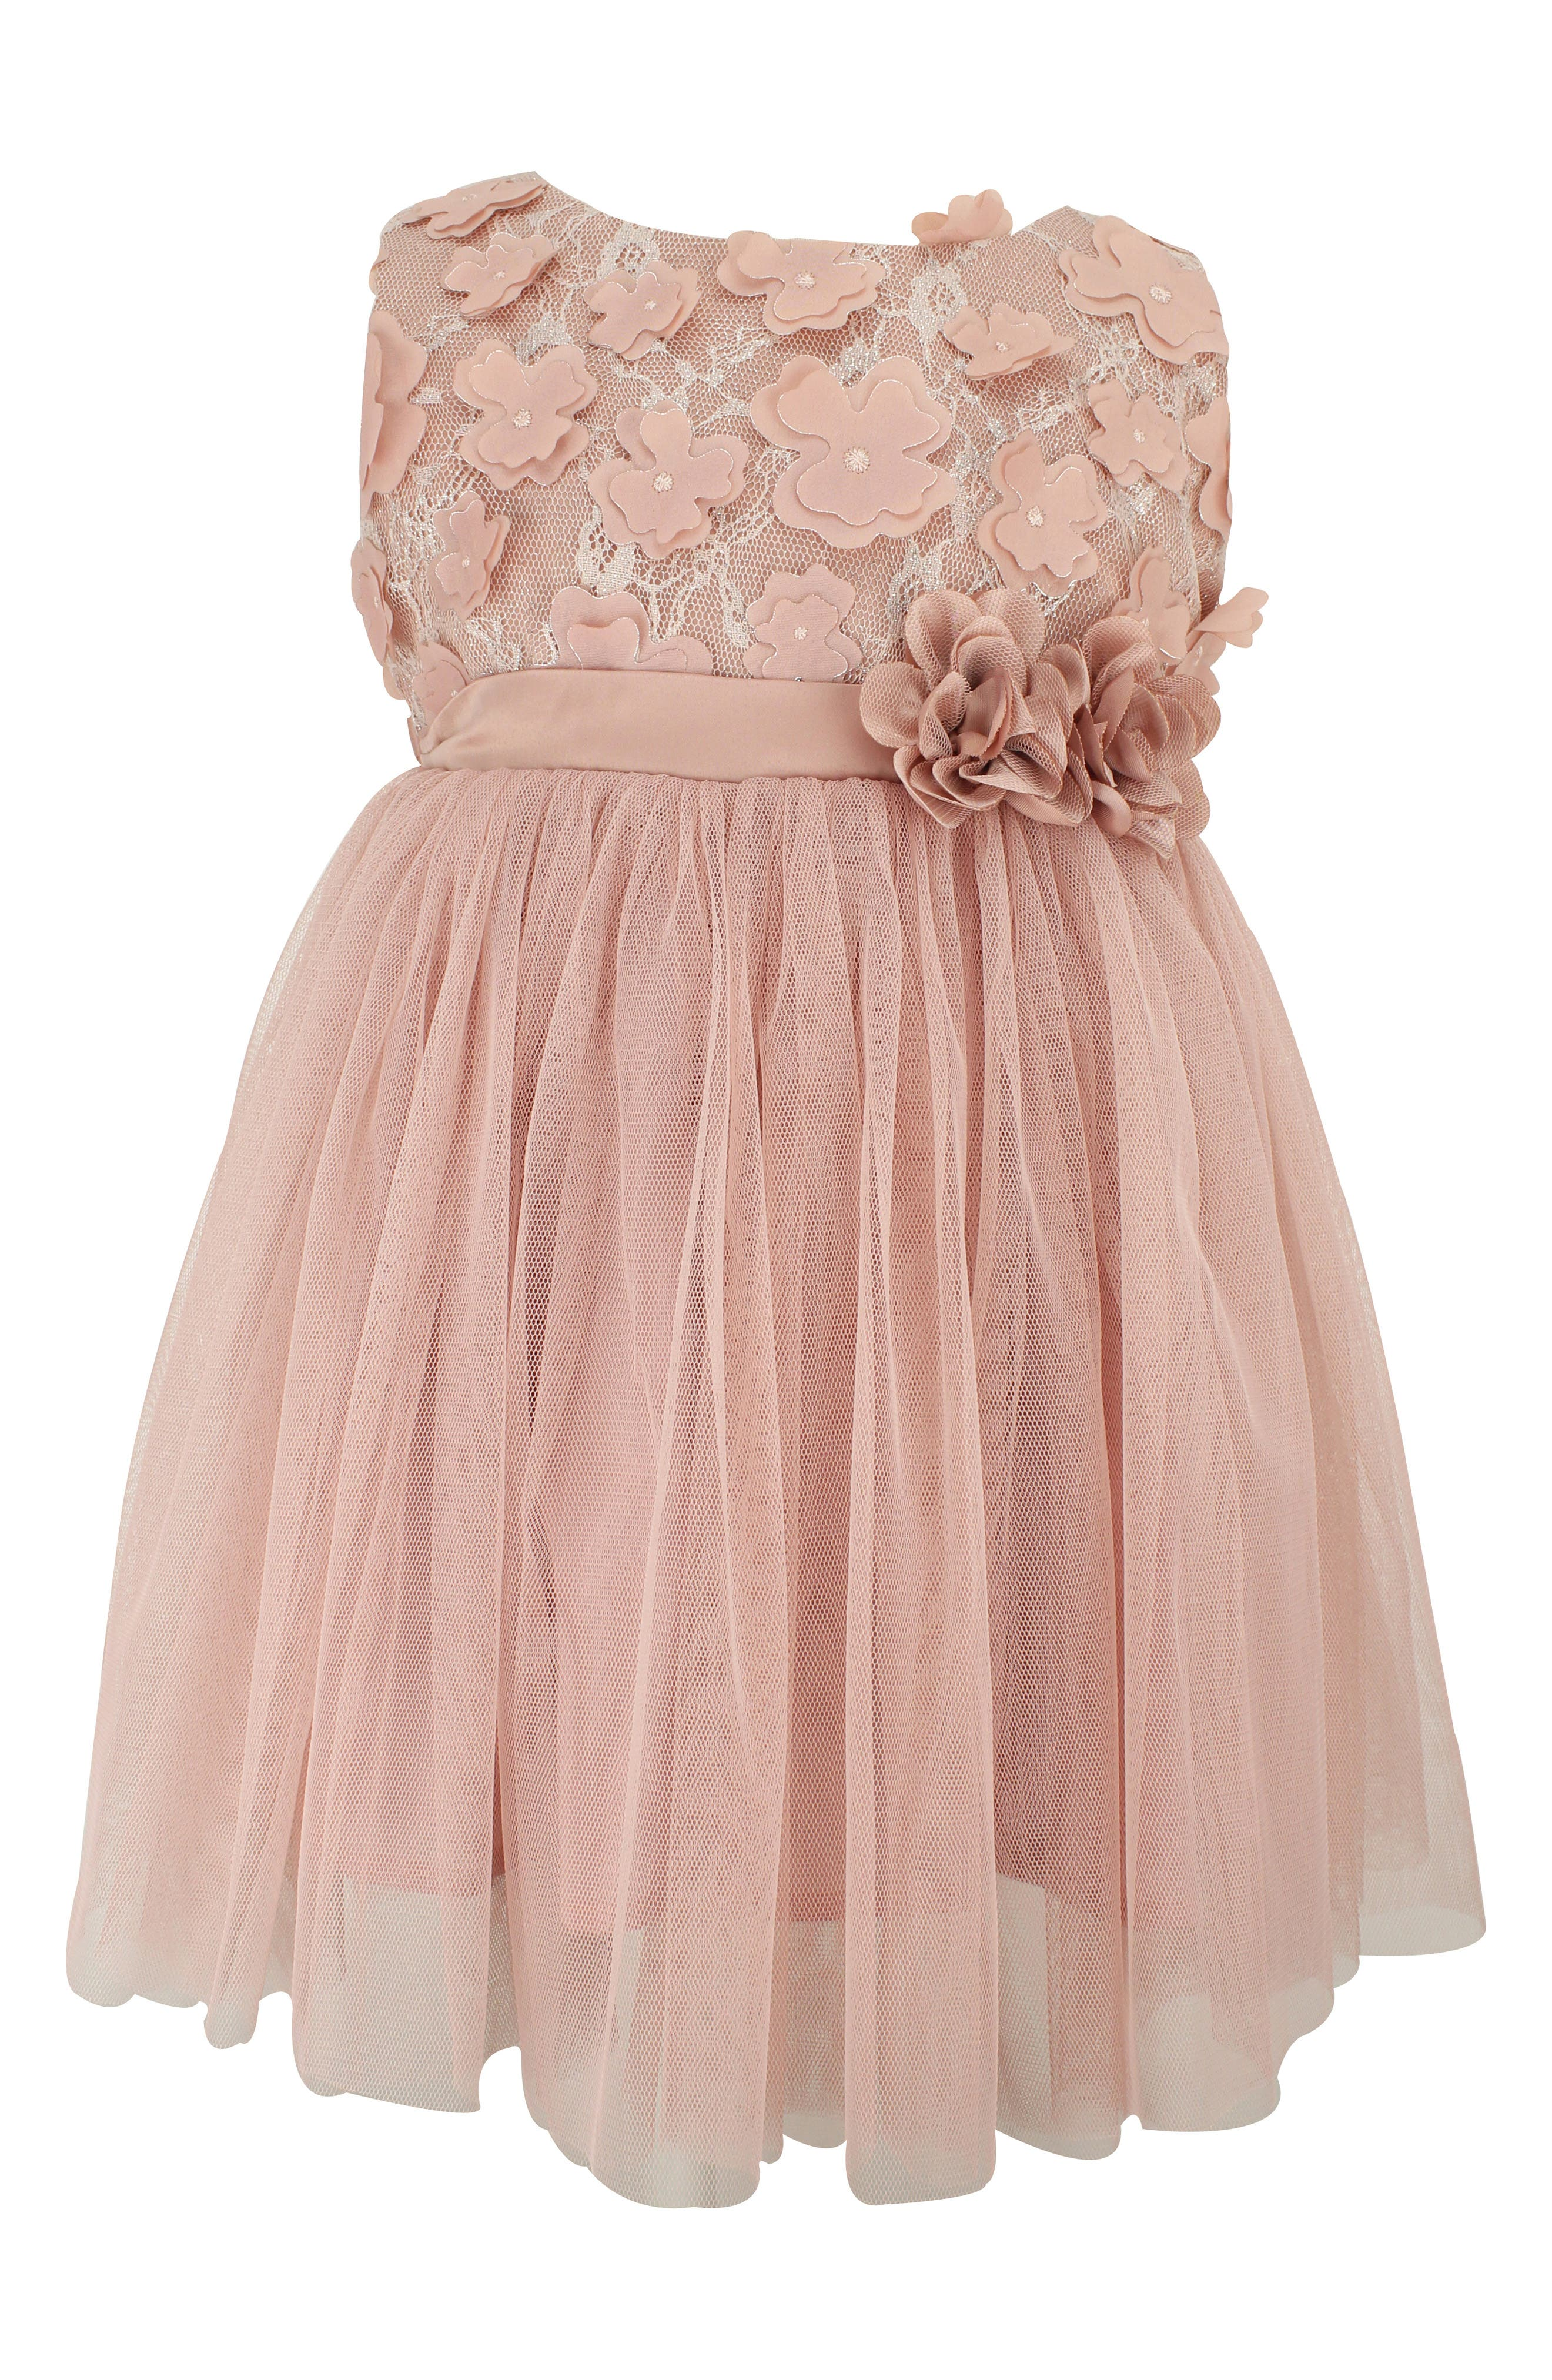 POPATU, Floral Lace & Tulle Dress, Main thumbnail 1, color, DUSTY PINK